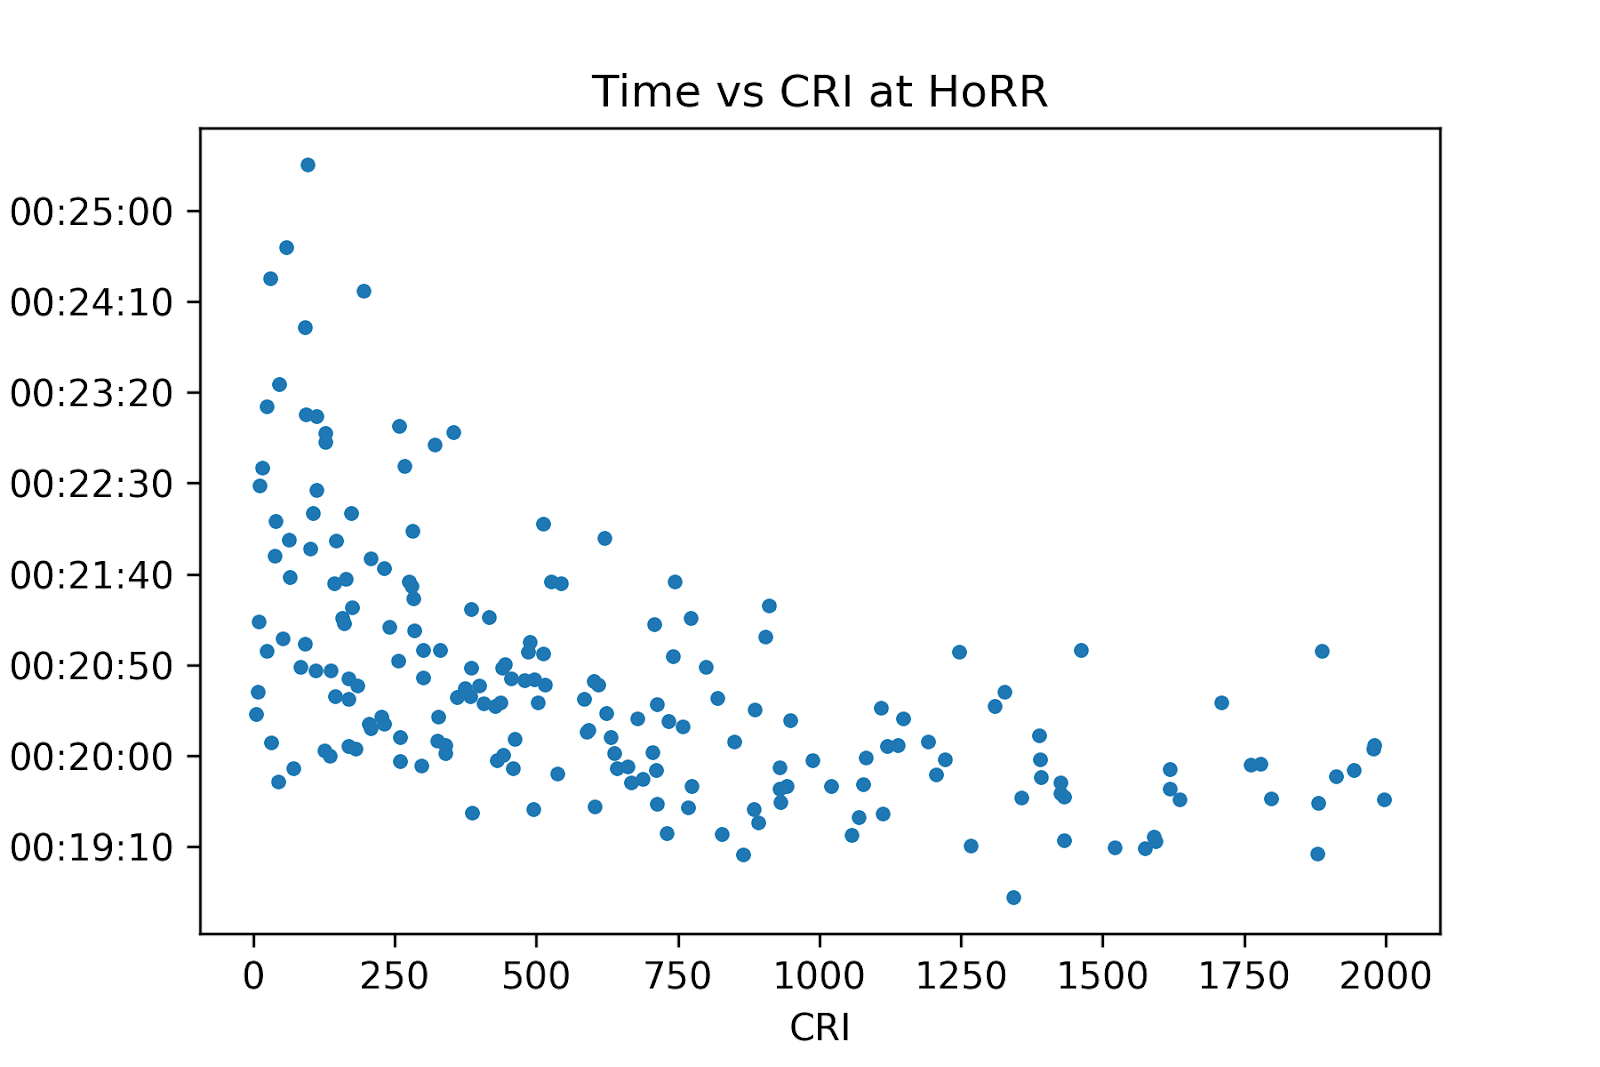 RPI vs time at HoRR